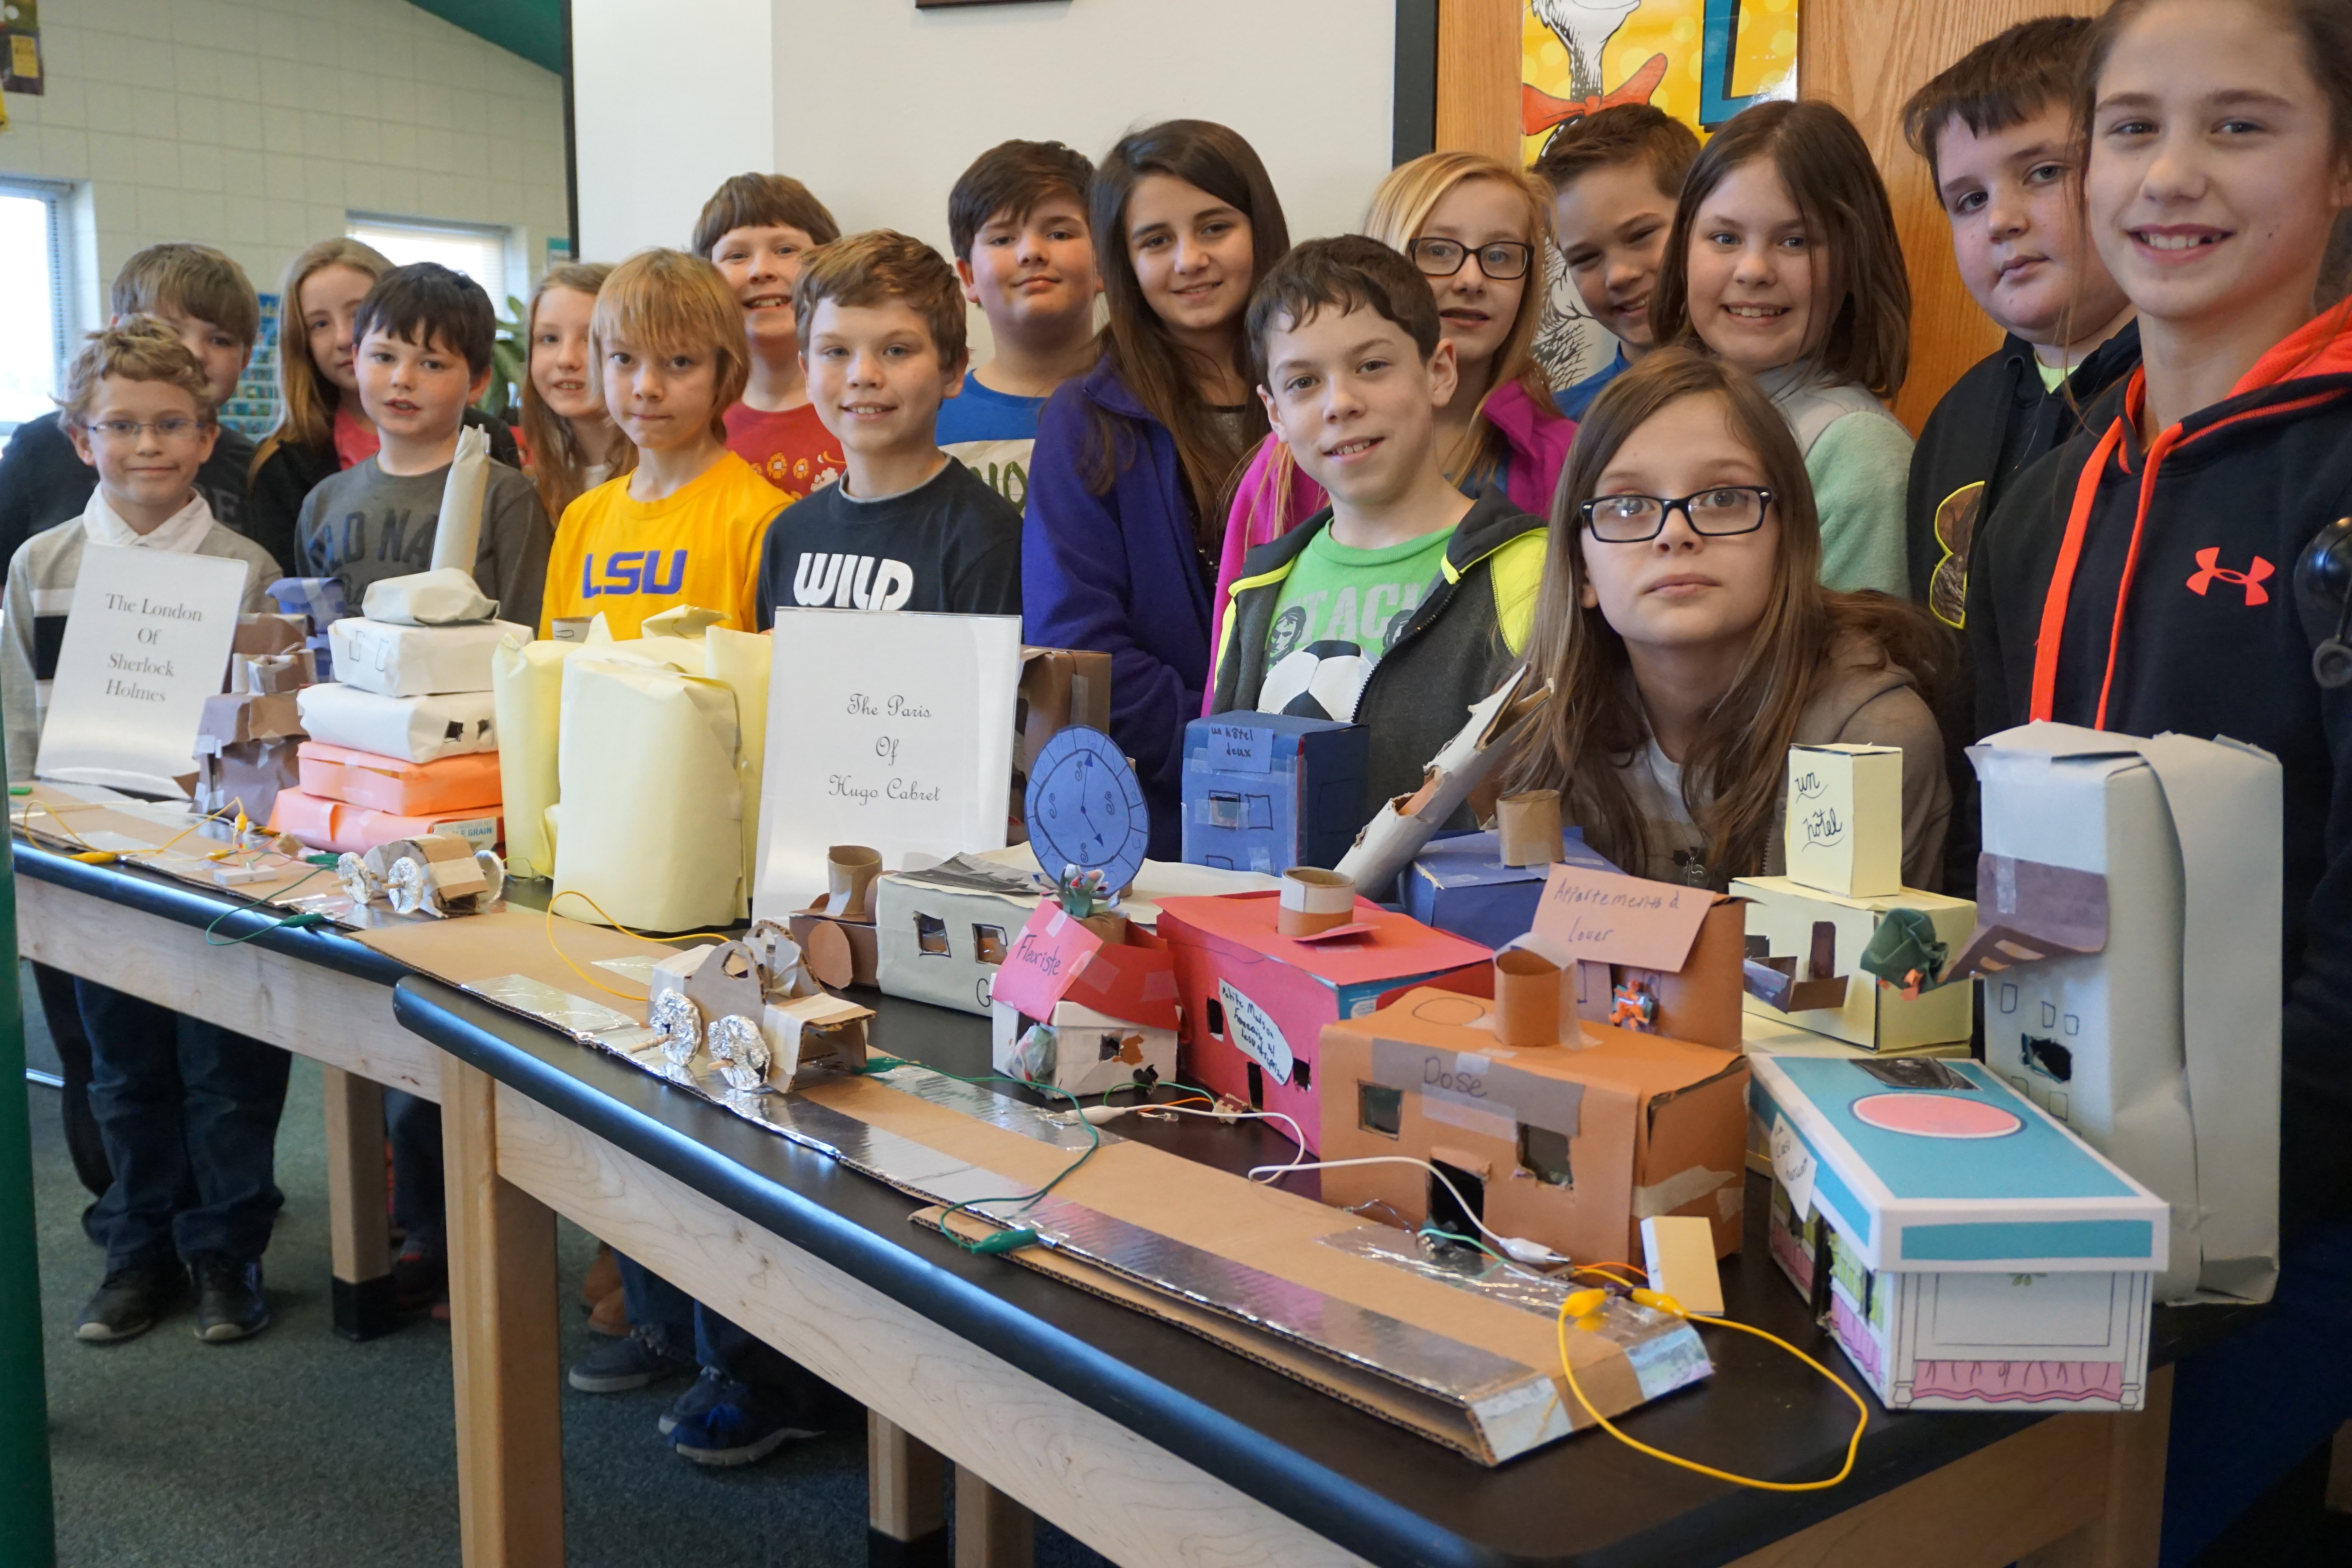 Students pose next to coding projects